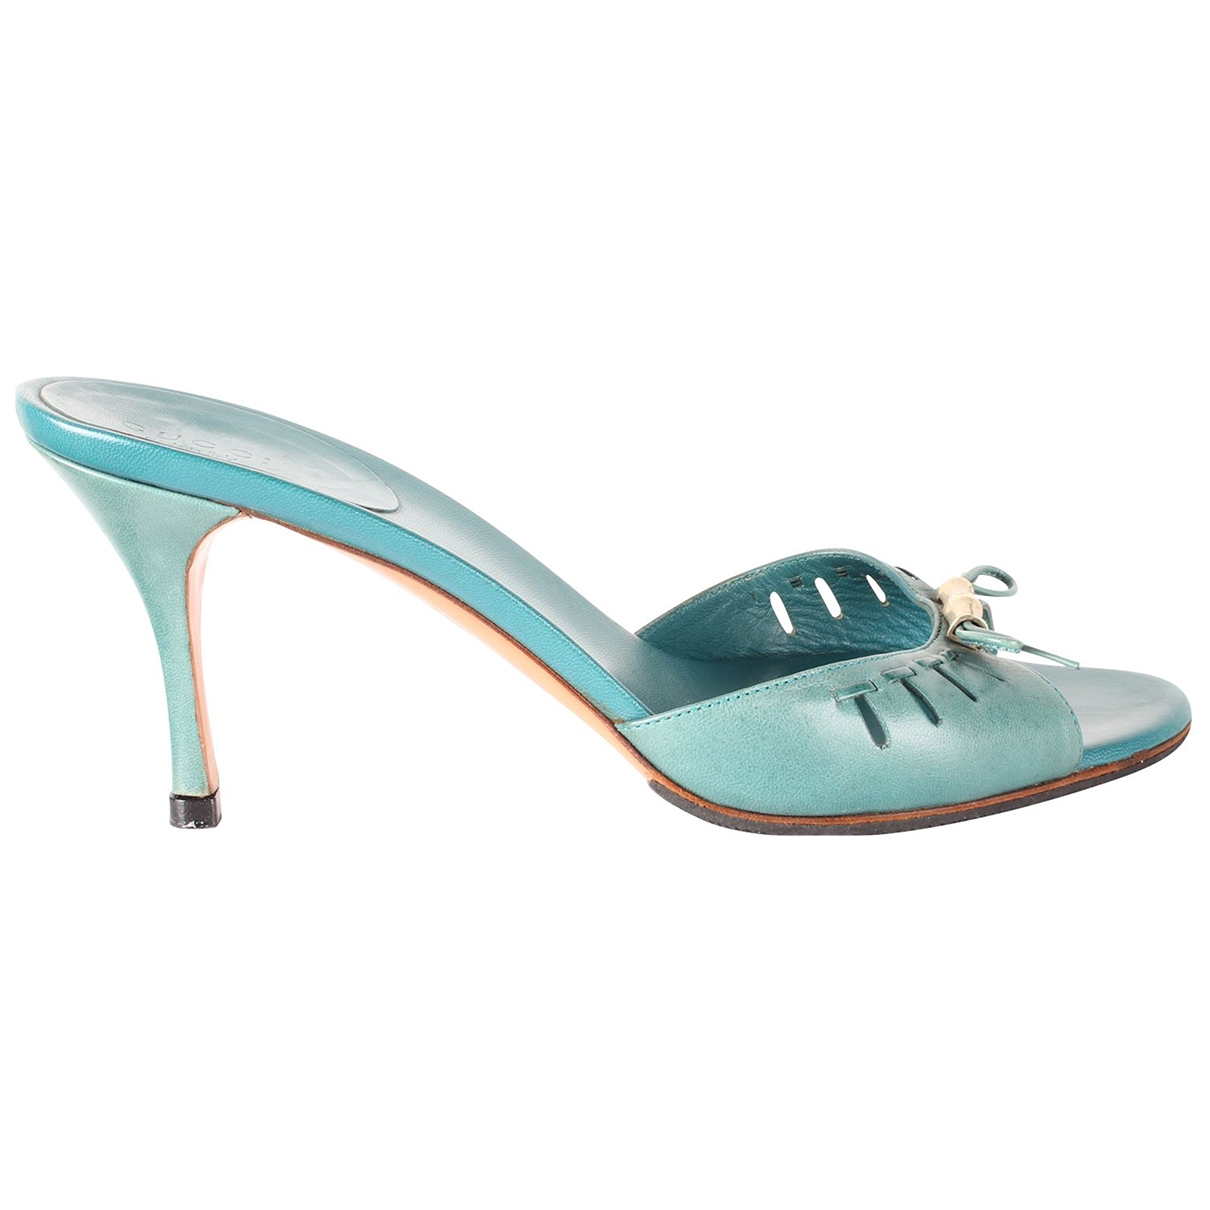 Gucci \N Turquoise Leather Sandals for Women 39 EU